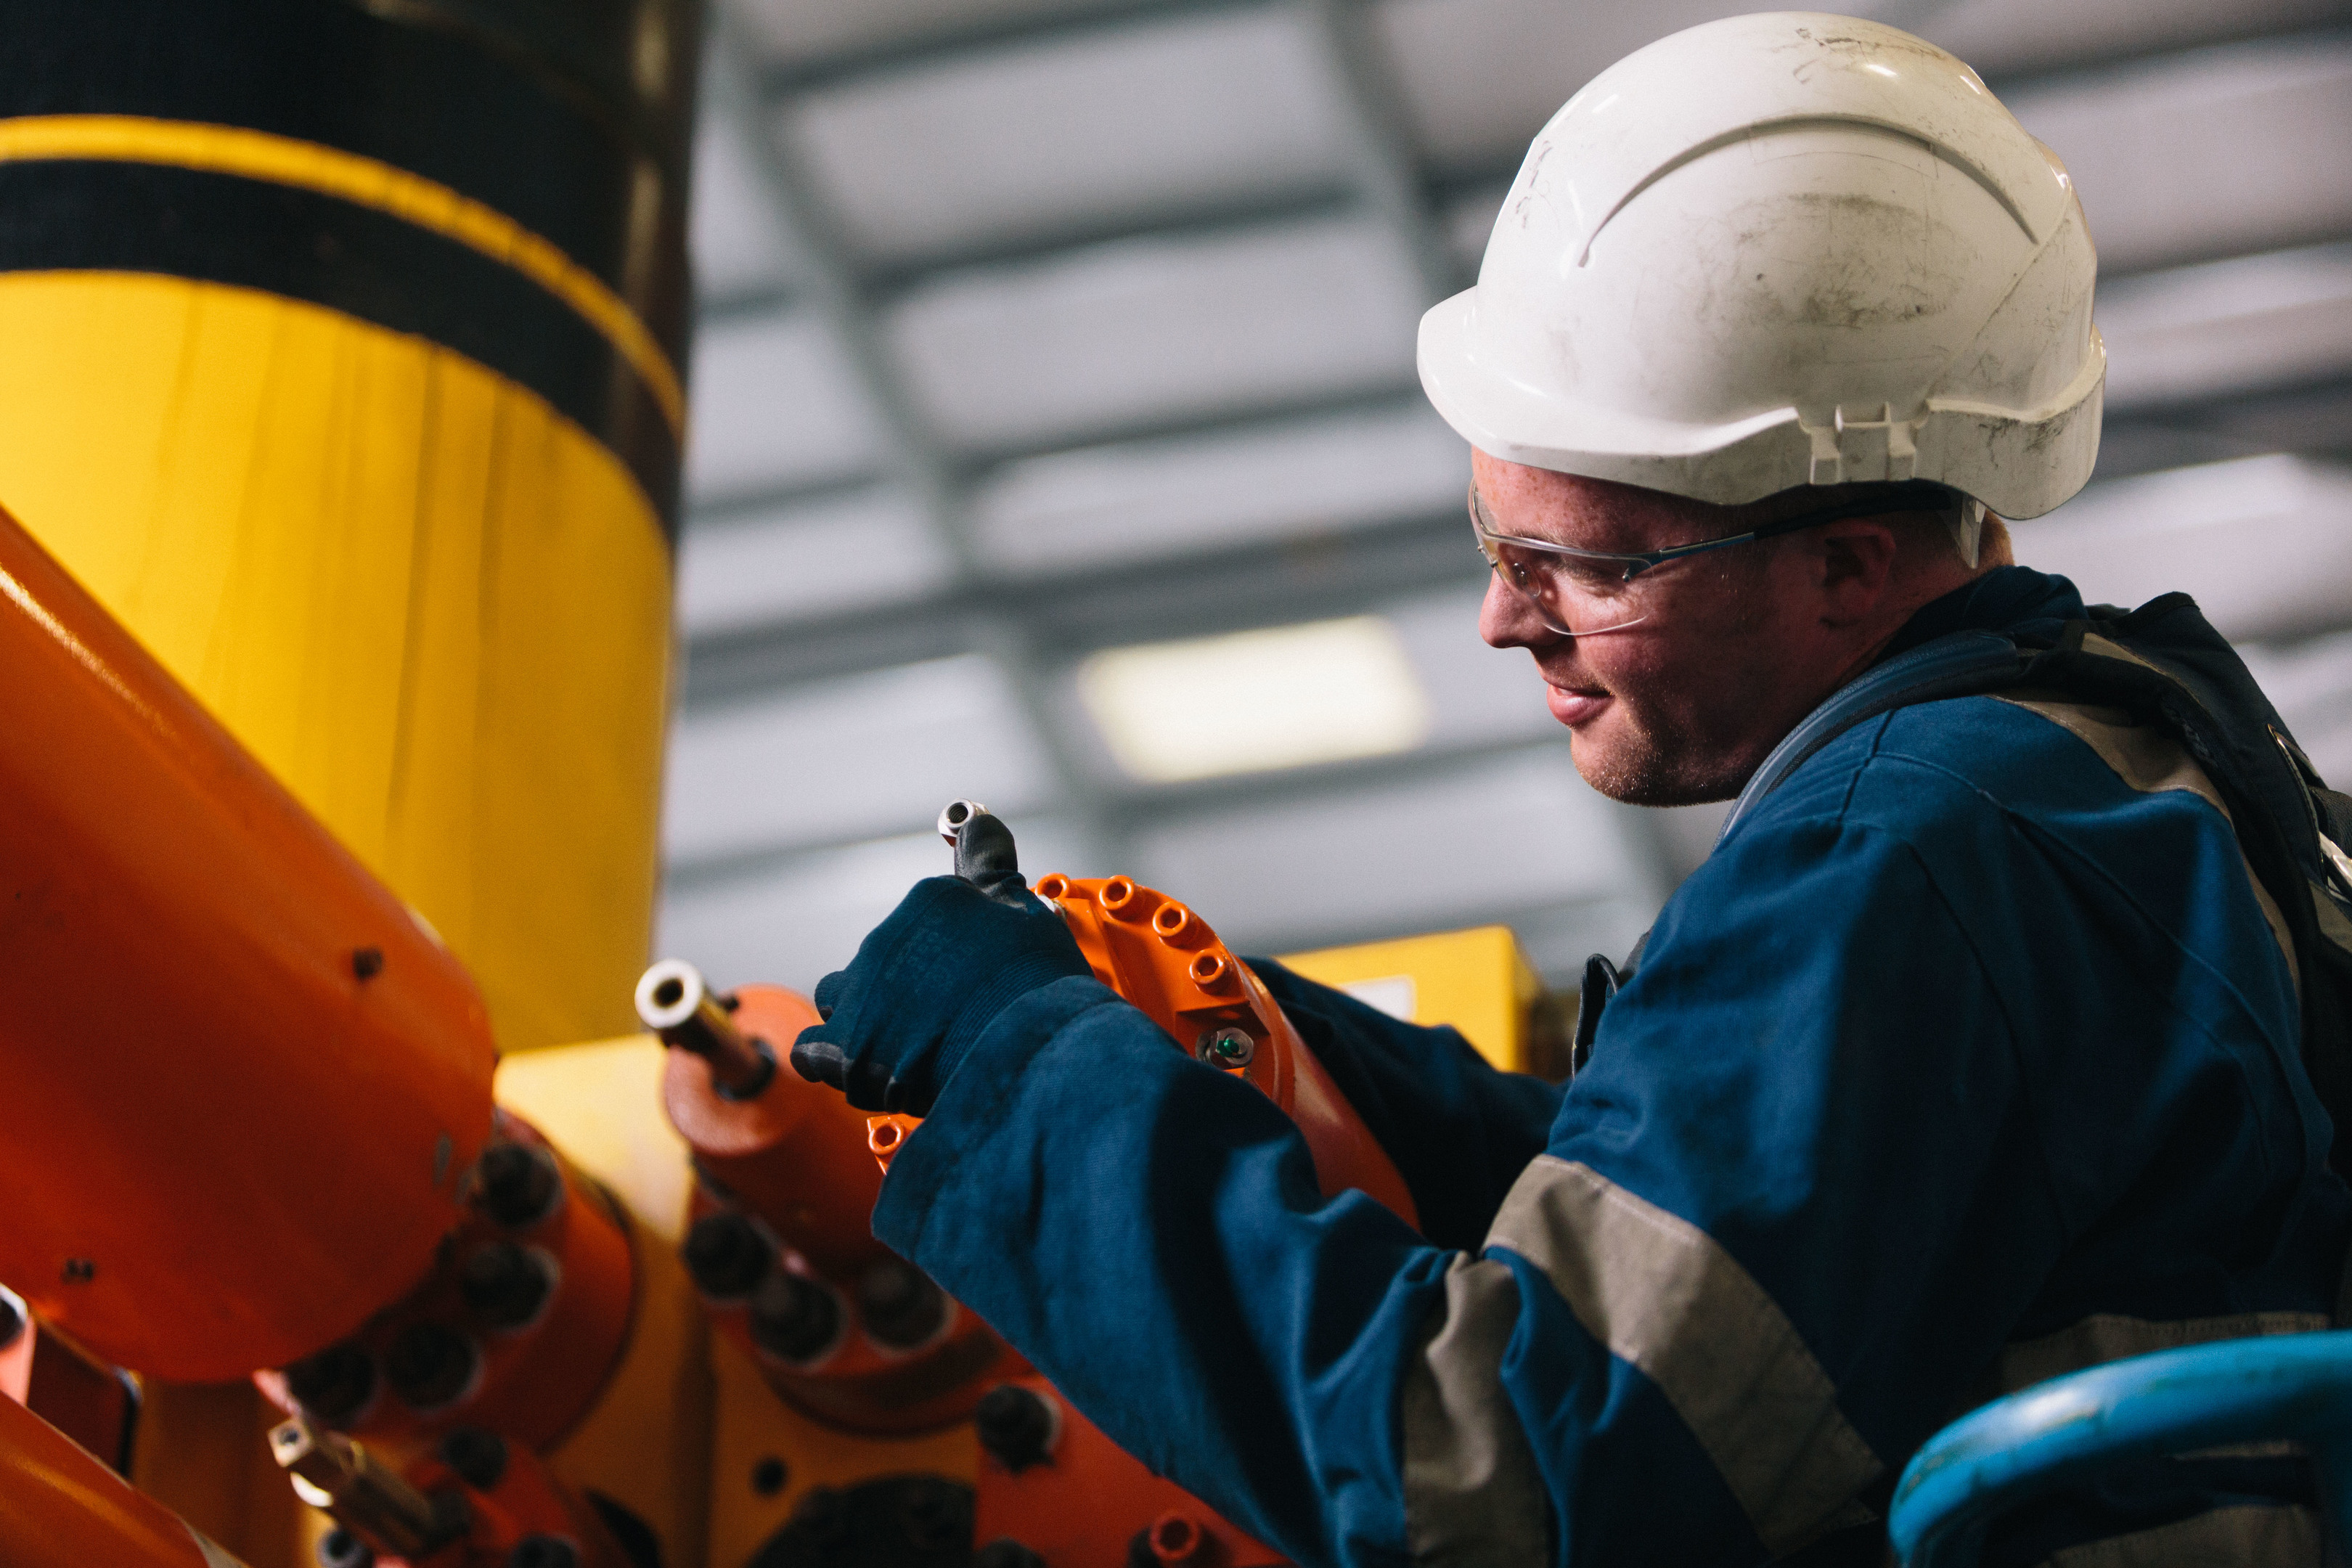 A BHGE worker